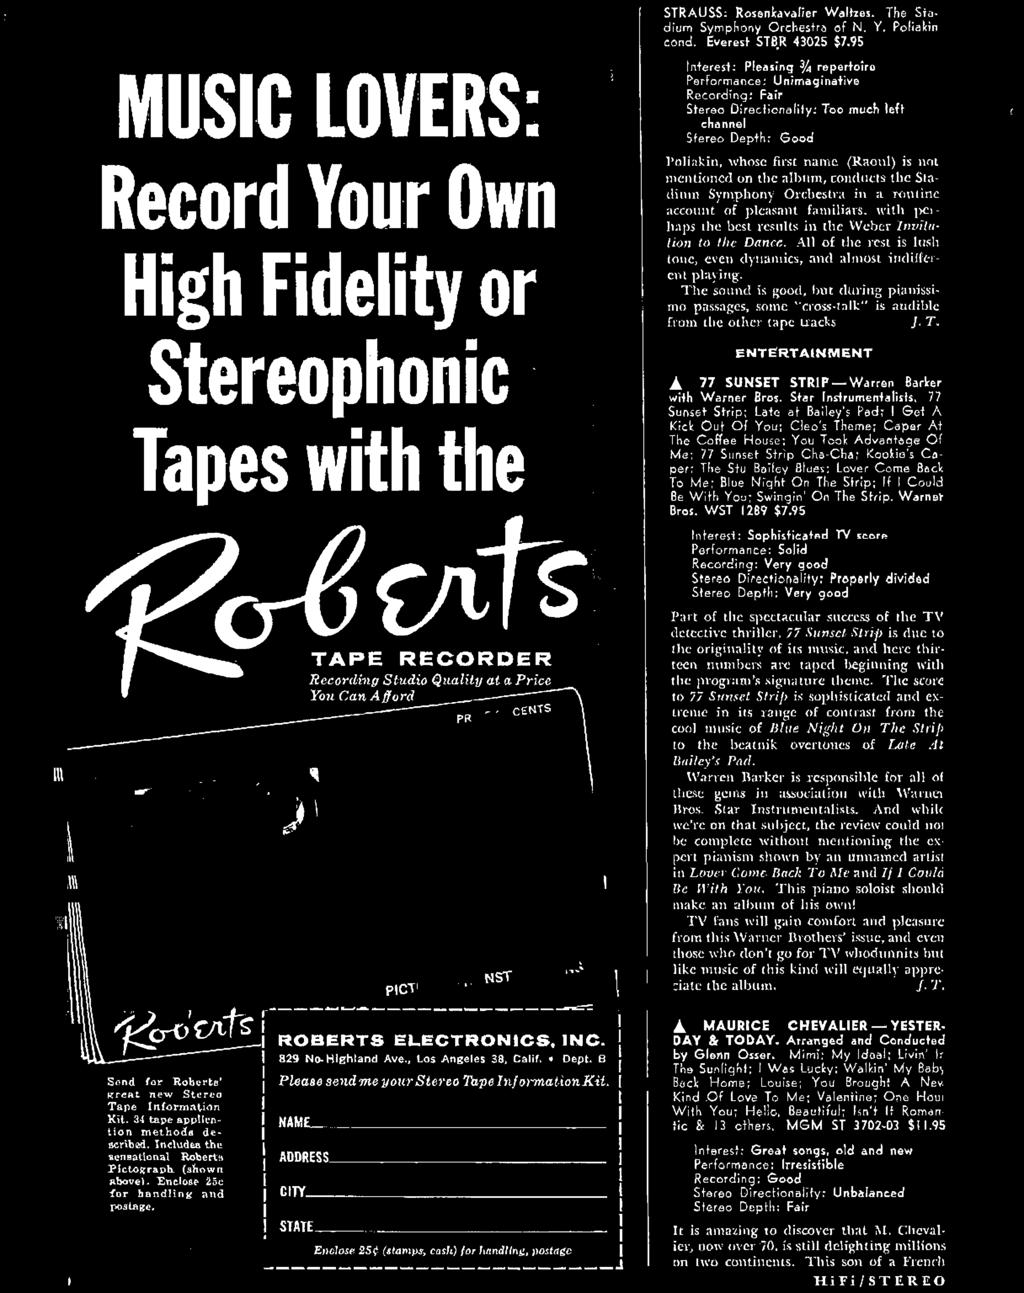 Enclose 25c 'for handling and postage. ROBERTS ELECTRONICS, INC. 829 No. Highland Ave., Los Angeles 38, Calif. Dept. B Please send me your Ste1'eo Tape Inf01'mation Kit.